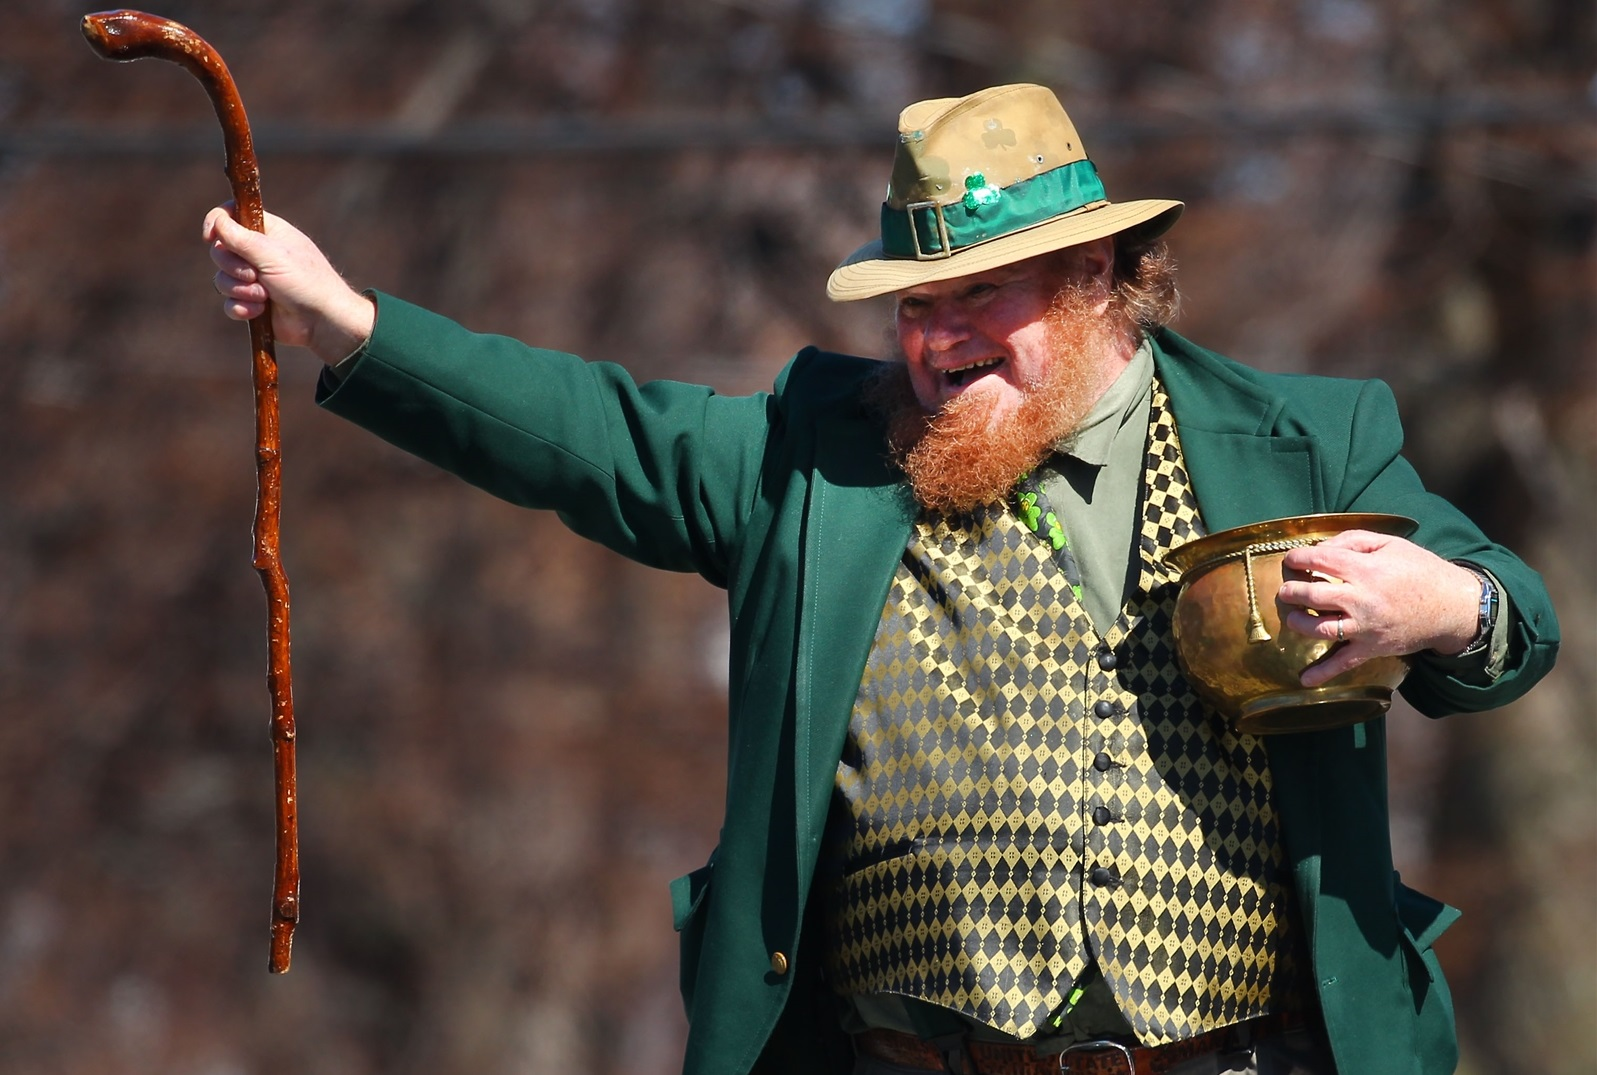 A dressed-up leprechaun greets the crowd at the 2016 Old Neighborhood St. Patrick's Day Parade. (Mark Mulville/Buffalo News file photo)